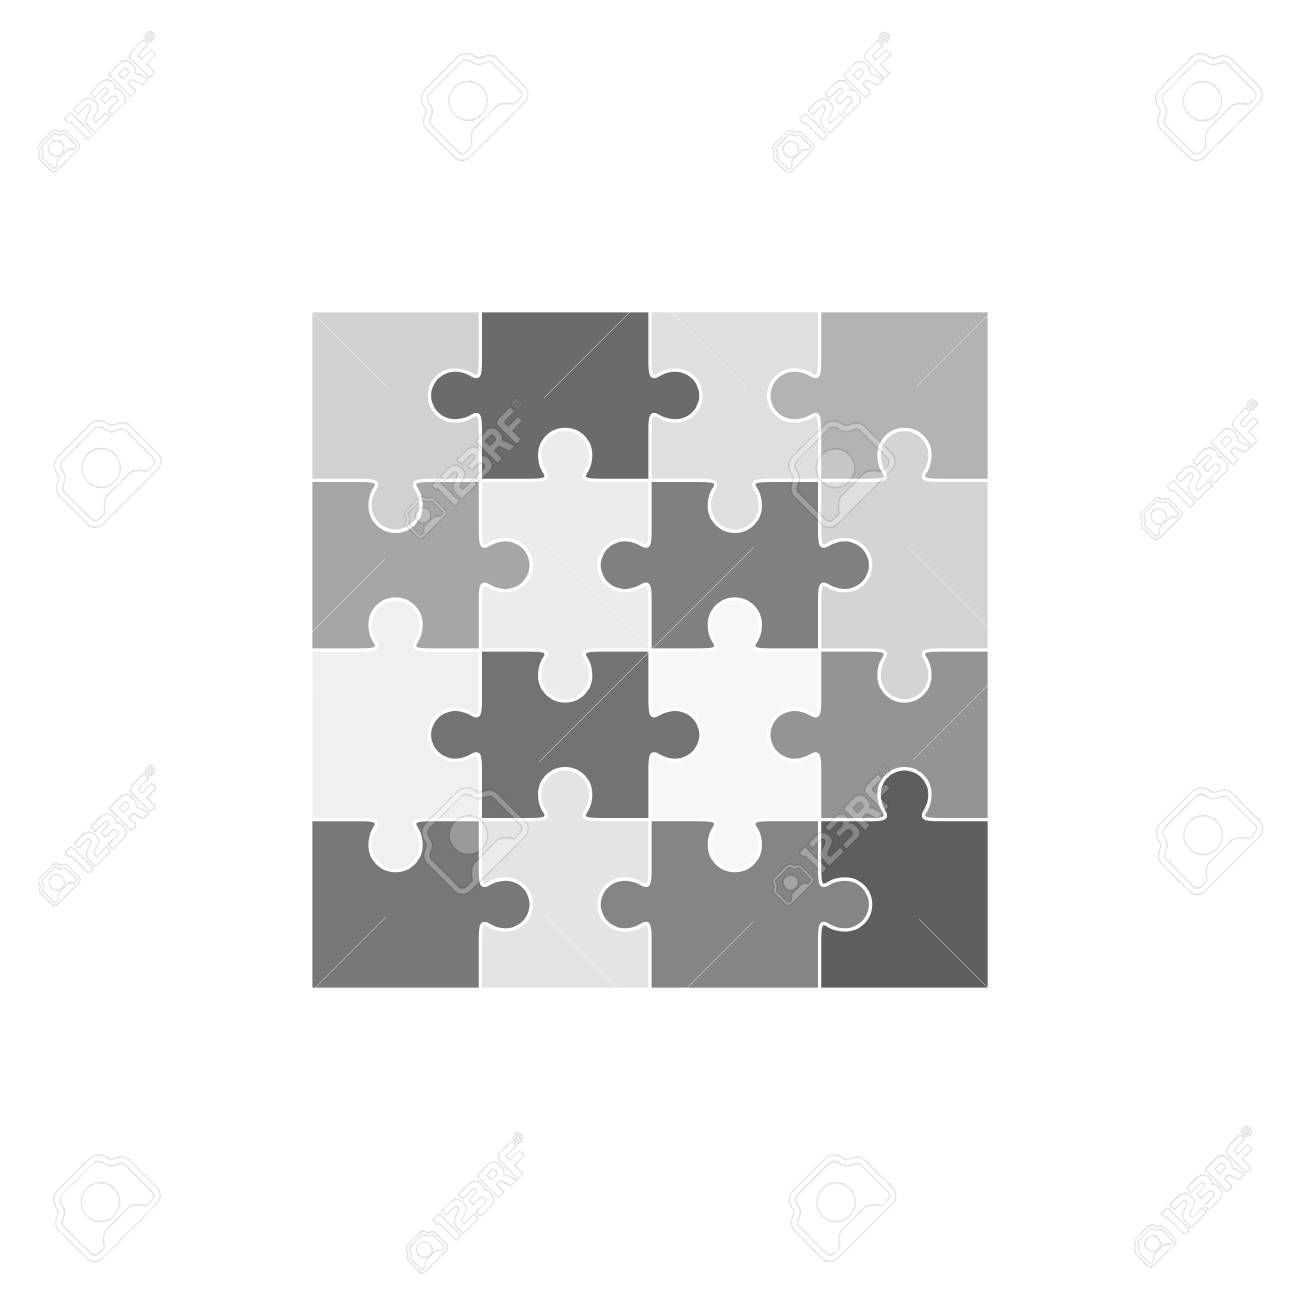 Jigsaw Puzzle Vector, Blank Simple Template Sixteen Elements Royalty ...